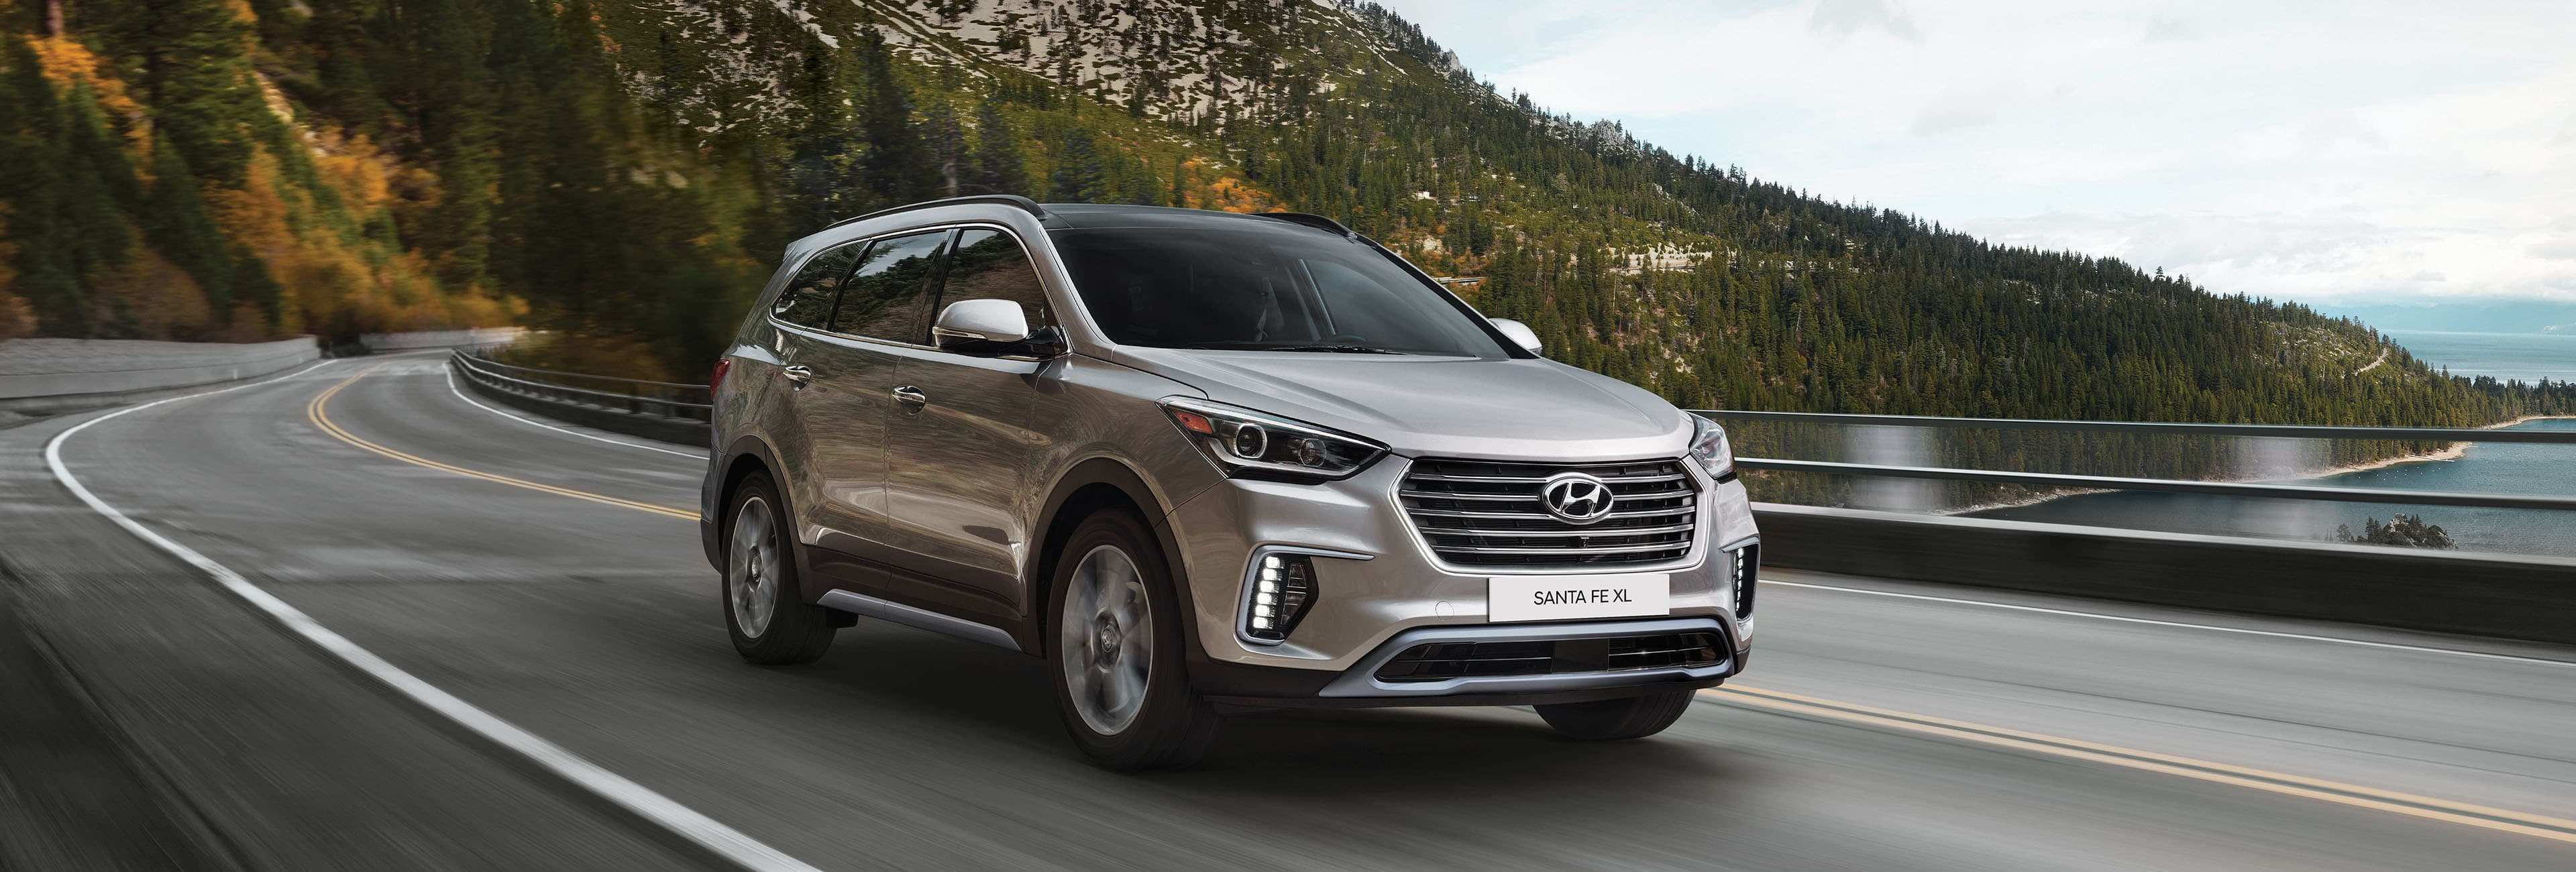 68 All New Hyundai Santa Fe Xl 2020 Redesign And Review